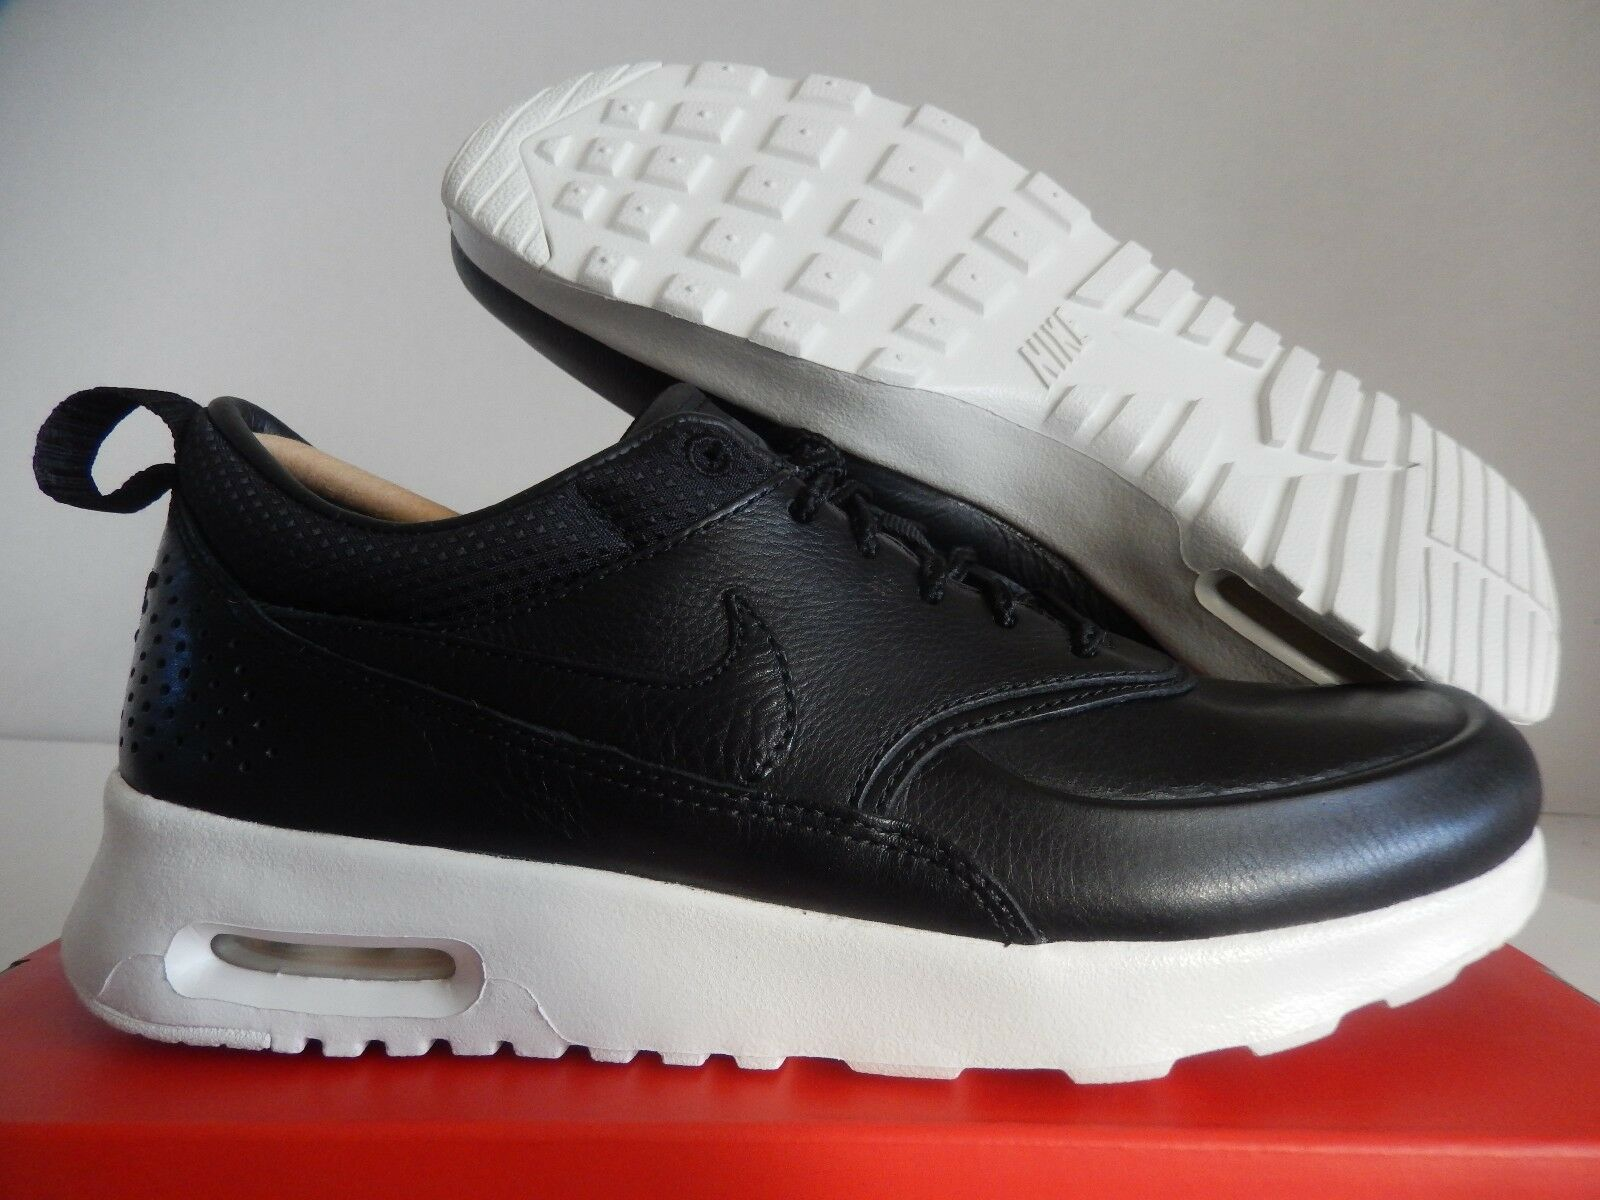 WMNS NIKE AIR MAX THEA PINNACLE BLACK-SAIL SZ 6.5 LEATHER!!! [839611-002]